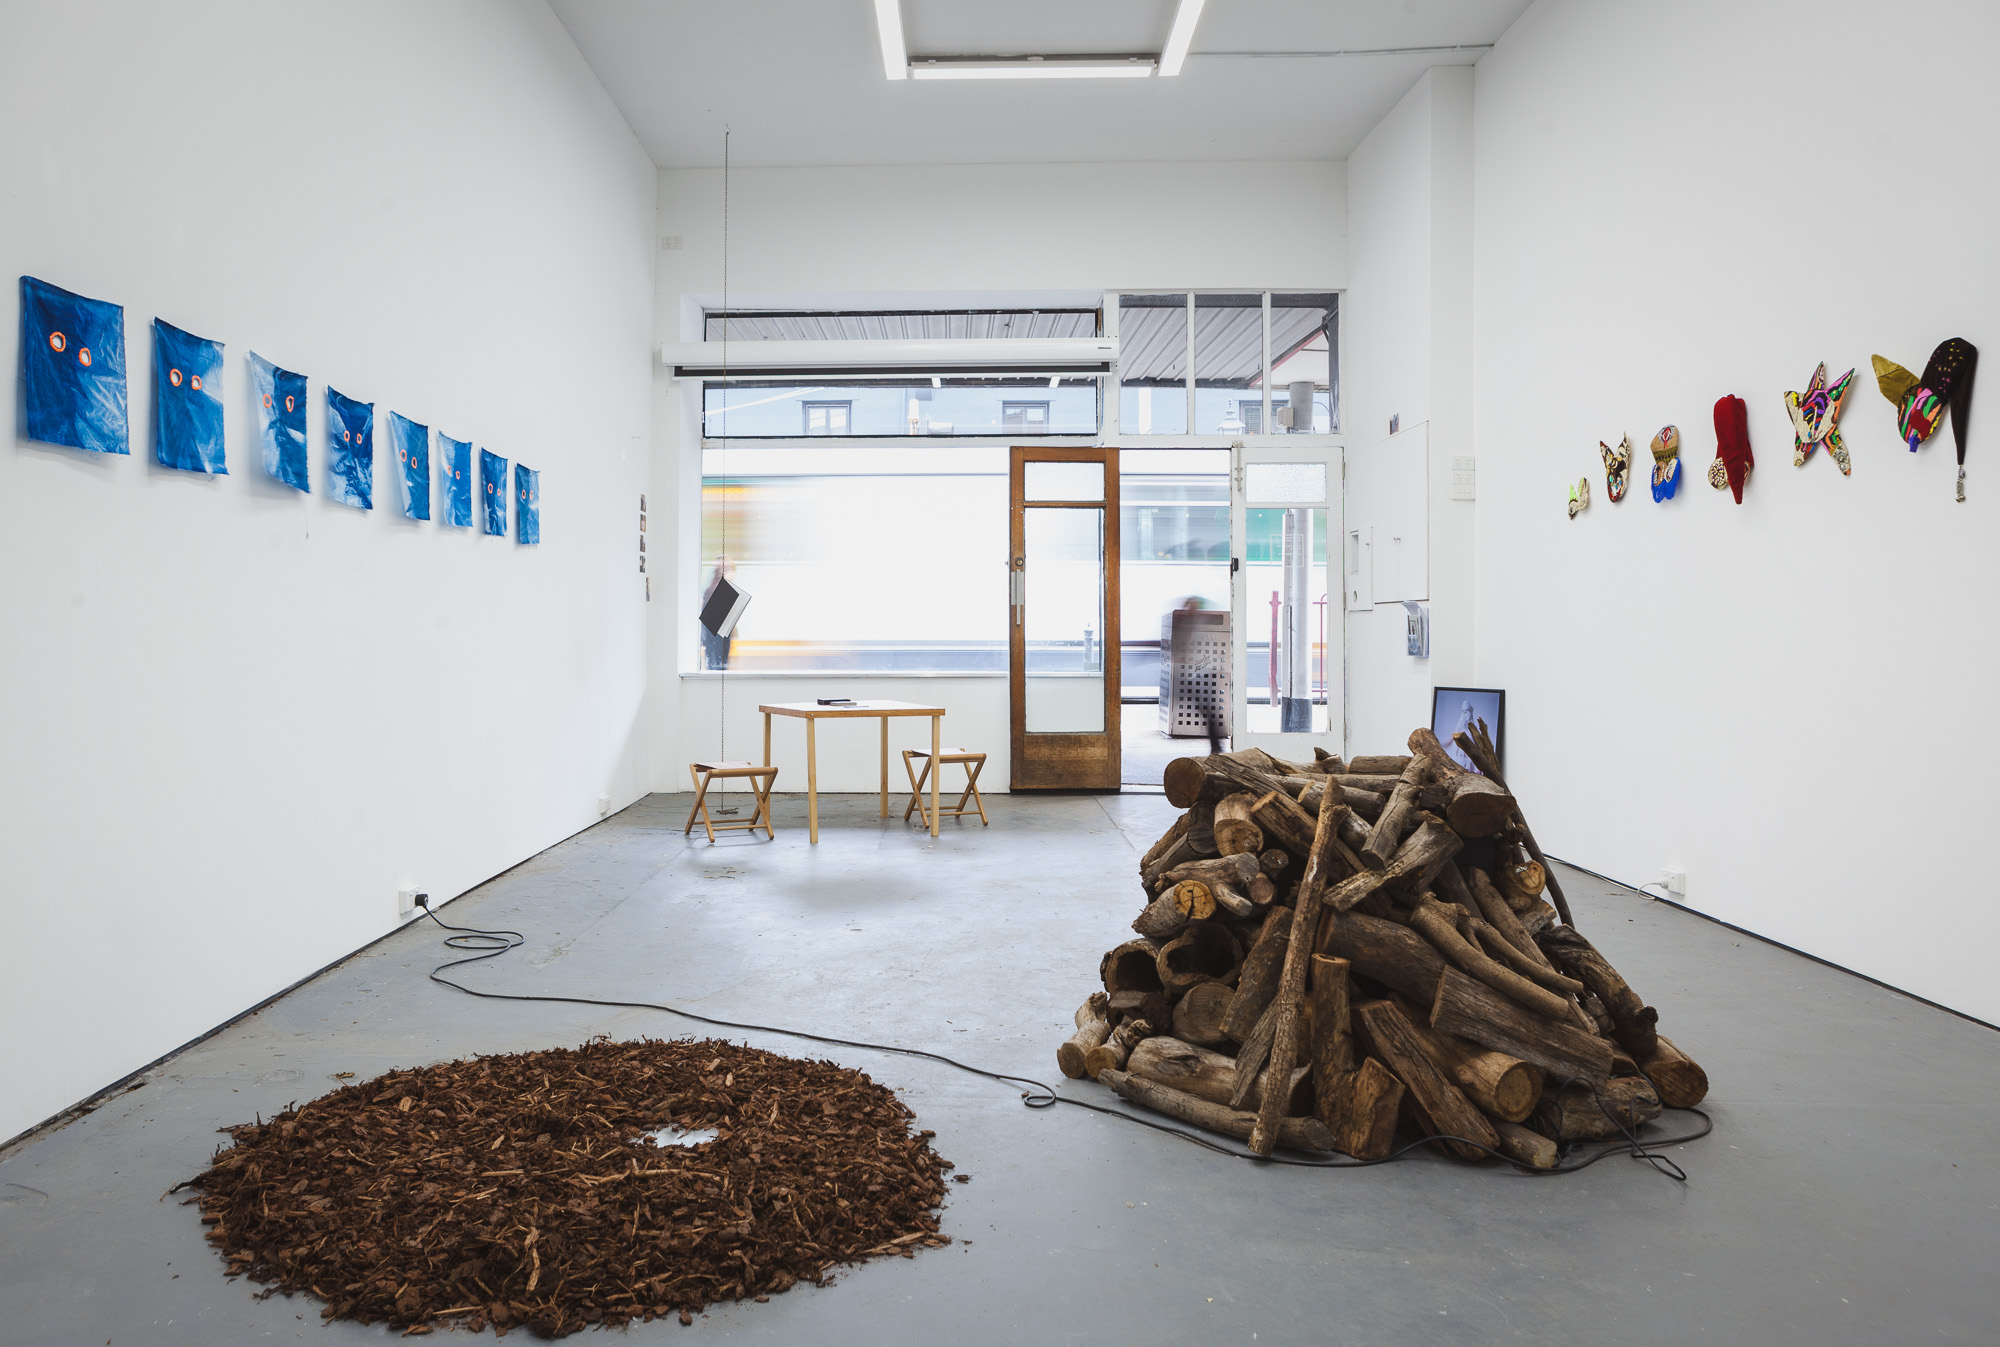 NETHERWORLDS, SEVENTH Gallery. Curated by Amy-Clare McCarthy and Kieran Swann. Installation view. Photograph by Dom Krapski.